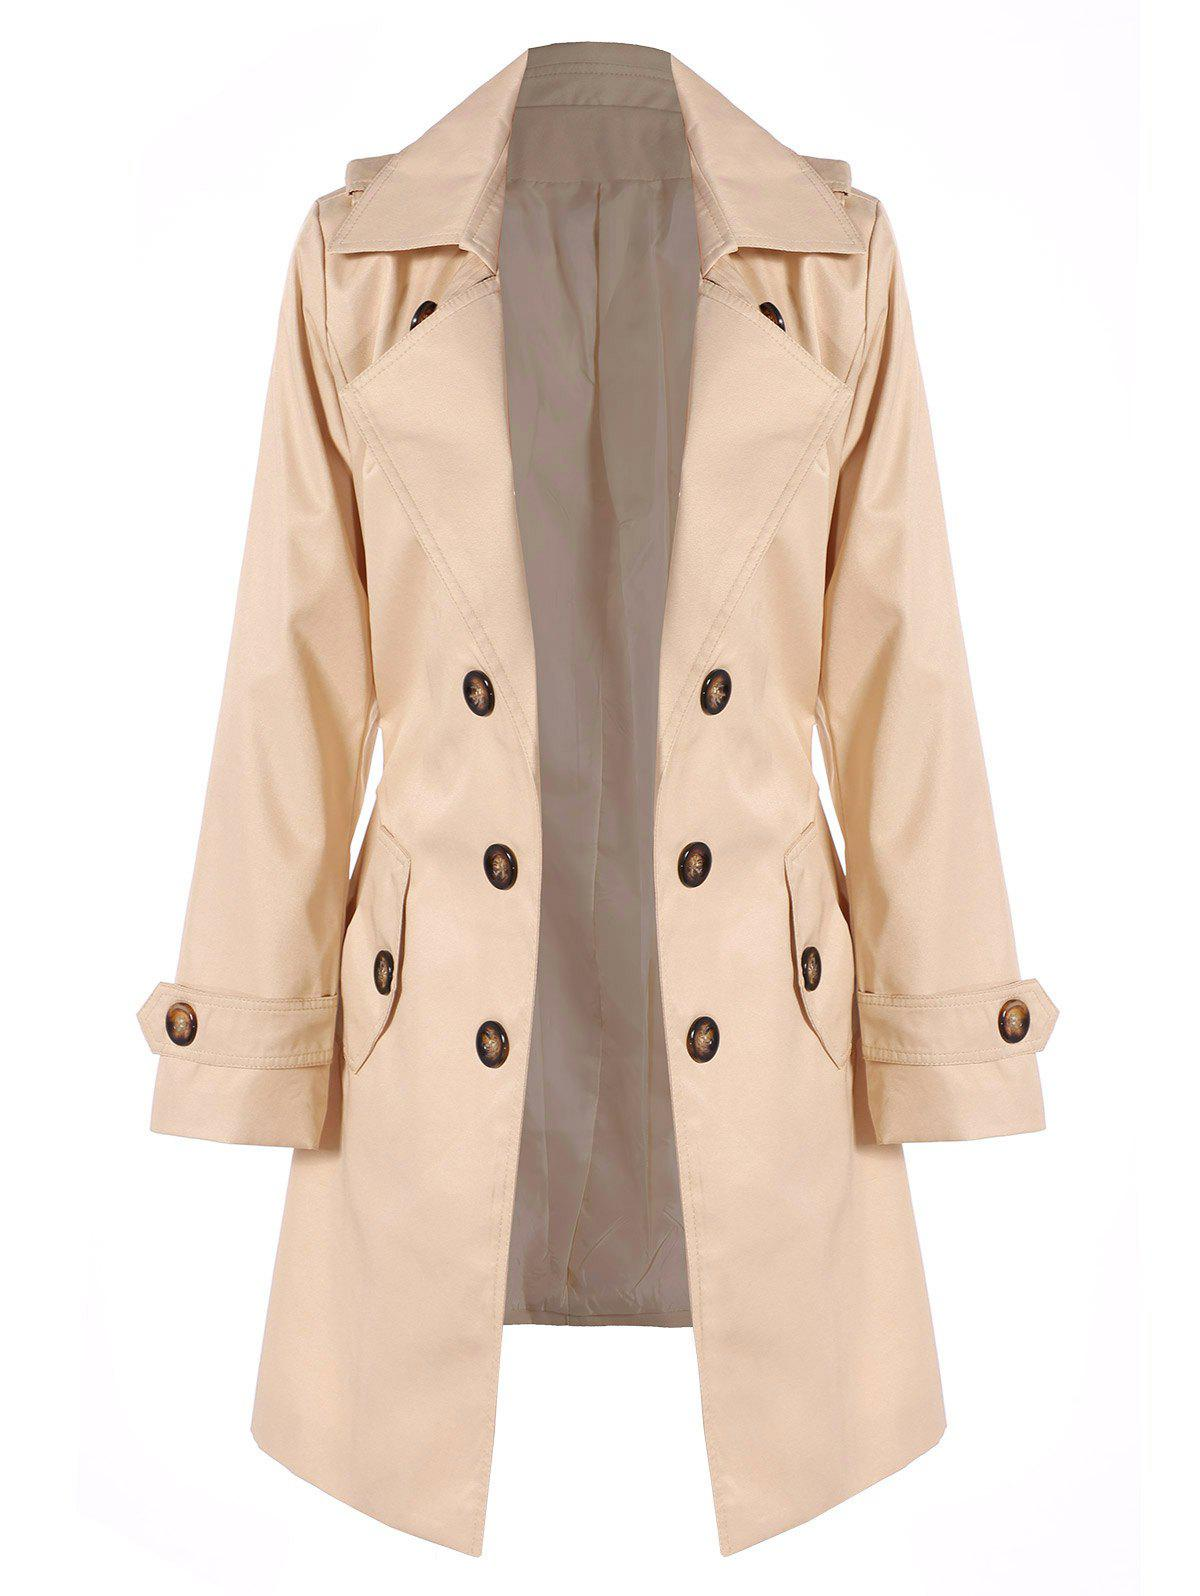 Belted Double Breasted Trench Coat with Pockets - LIGHT KHAKI L